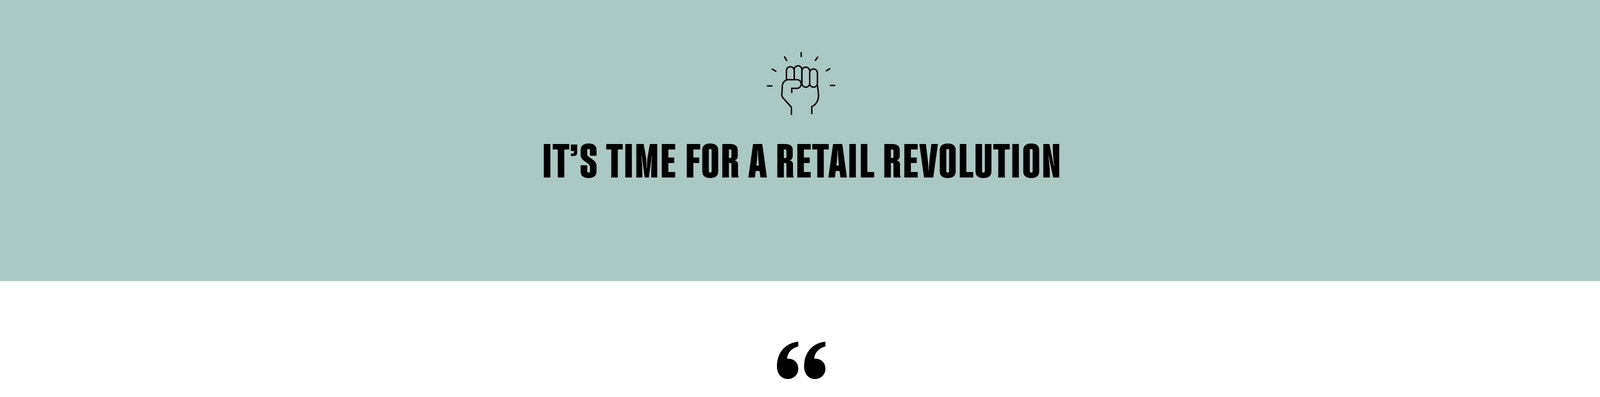 It's time for a retail revolution